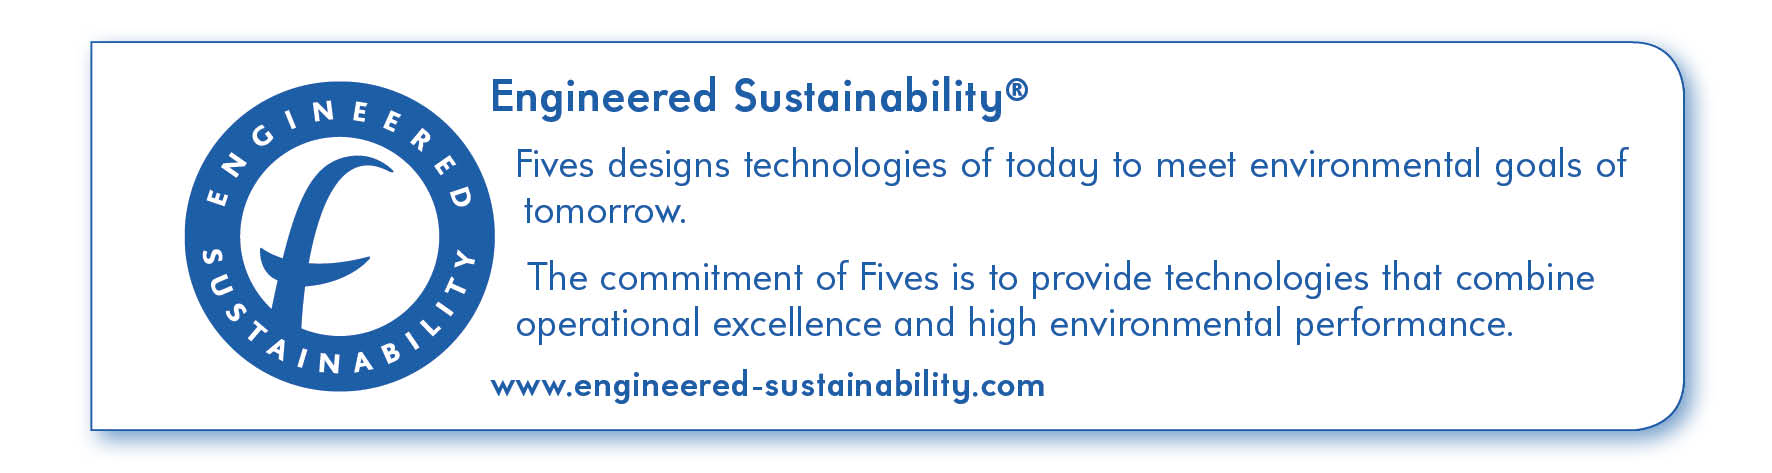 ENCART ENGINEERING SUSTAINABILITY RVB-FIVES